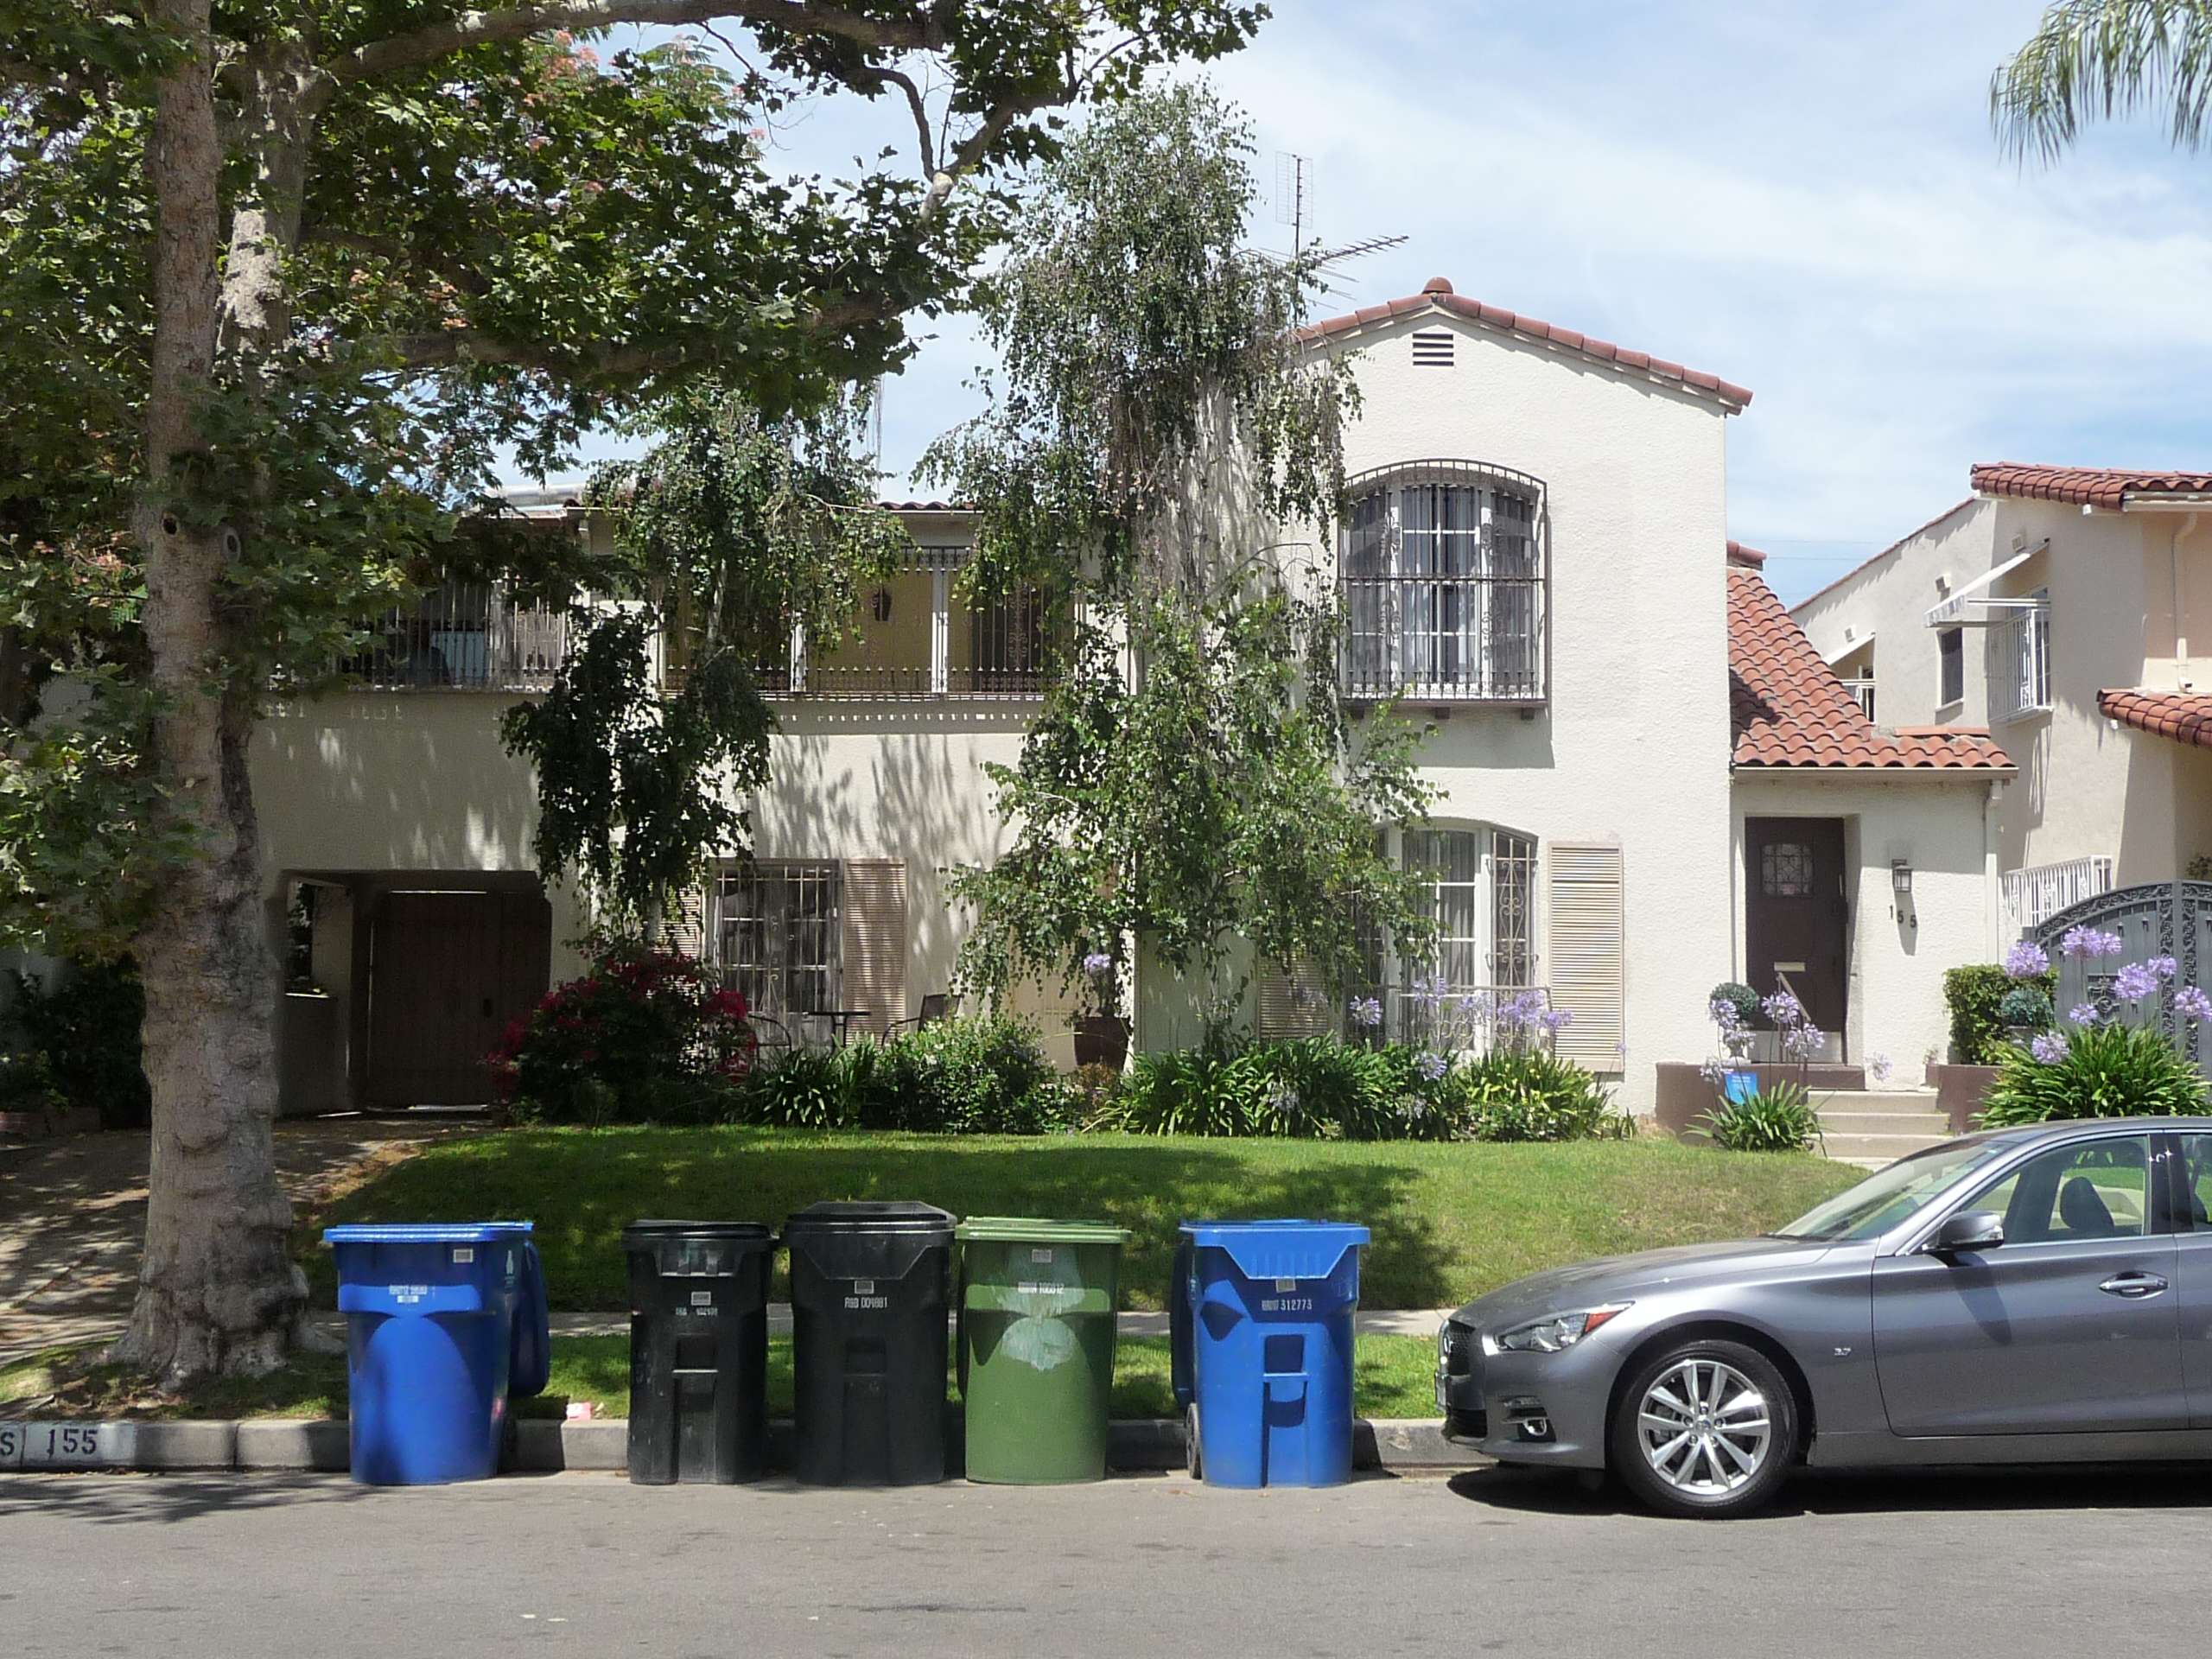 155 S MANSFIELD AVE - PHOTO